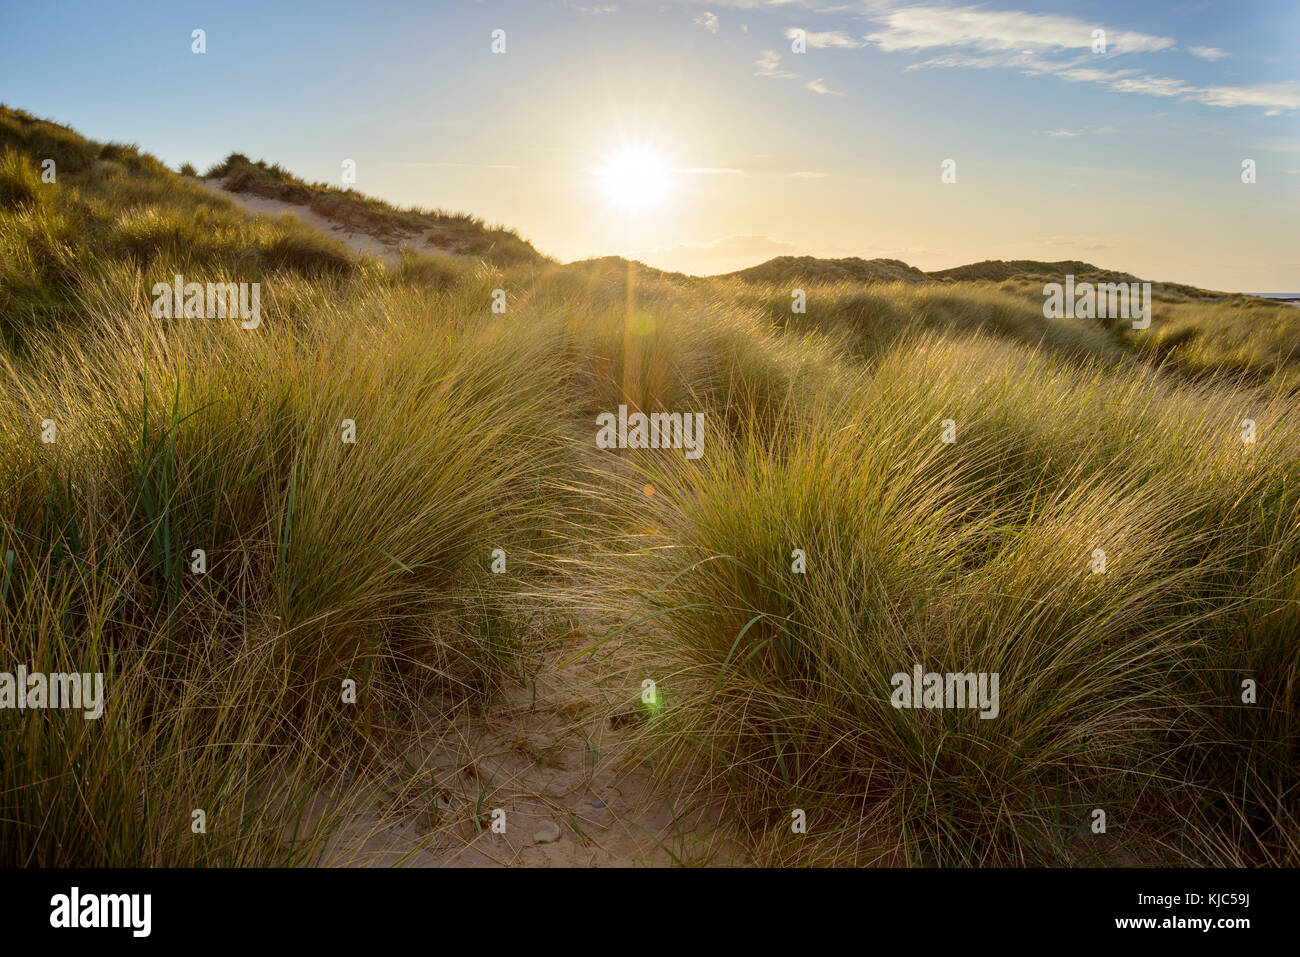 Sun shining over the grassy sand dunes in the village of Seahouses at the North Sea in Northumberland, England, - Stock Image